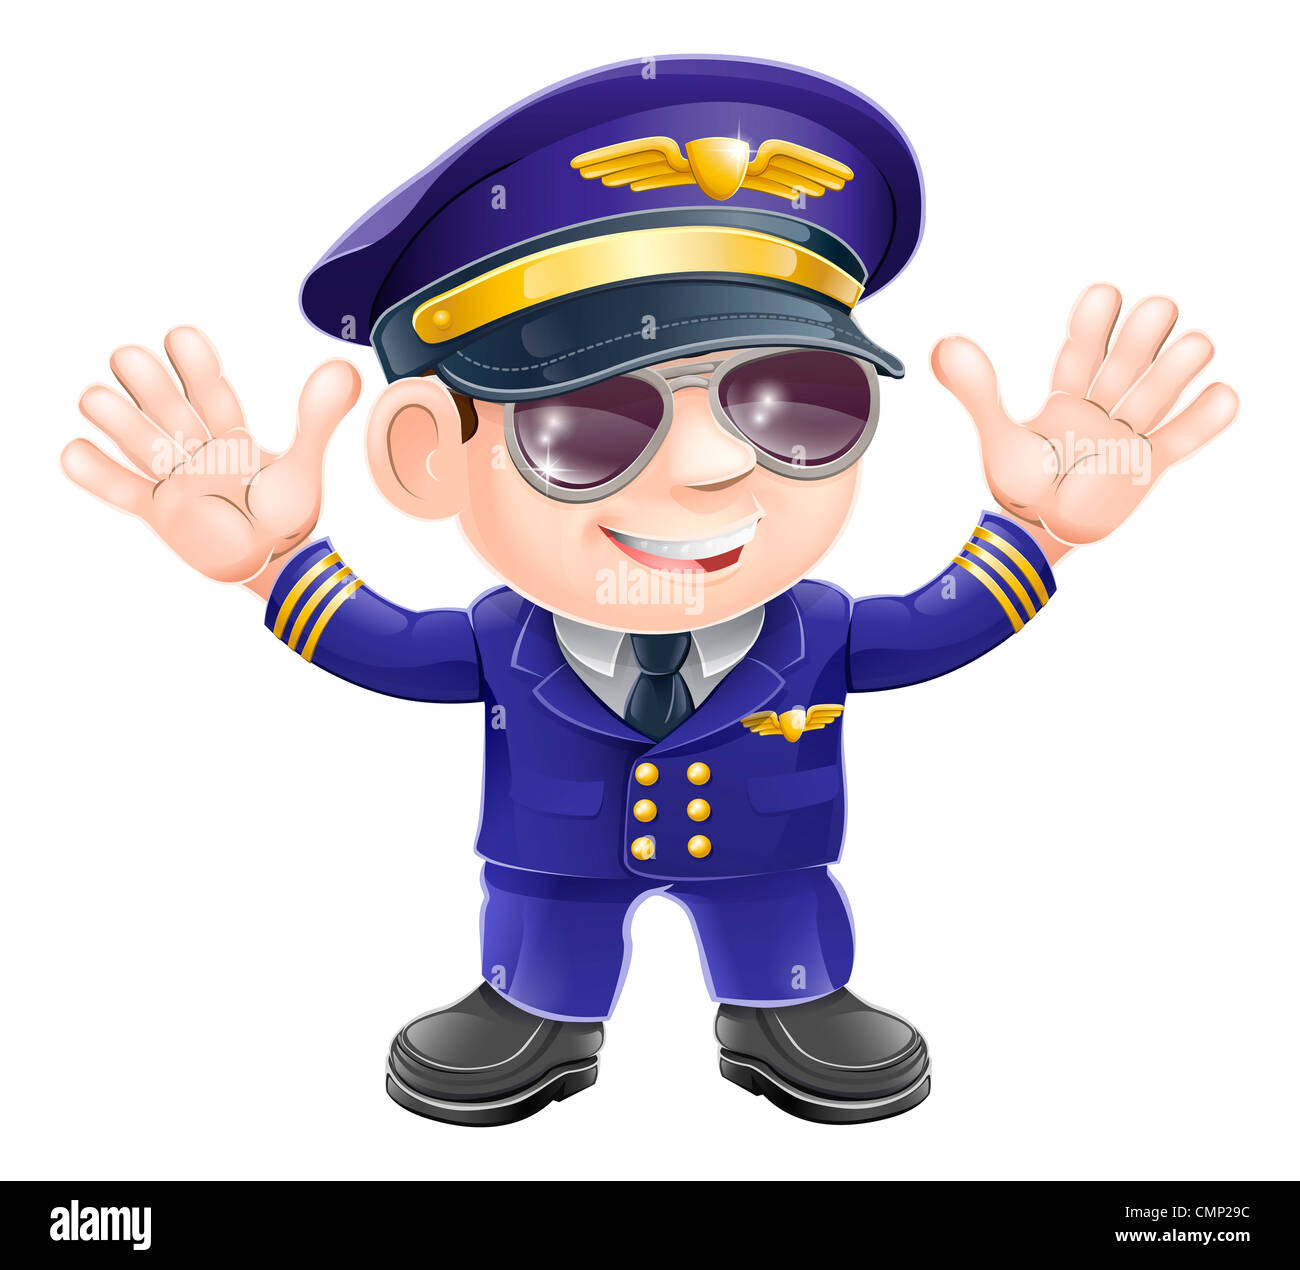 29d752f286 Illustration of a cute happy airplane pilot wearing sunglasses and waving